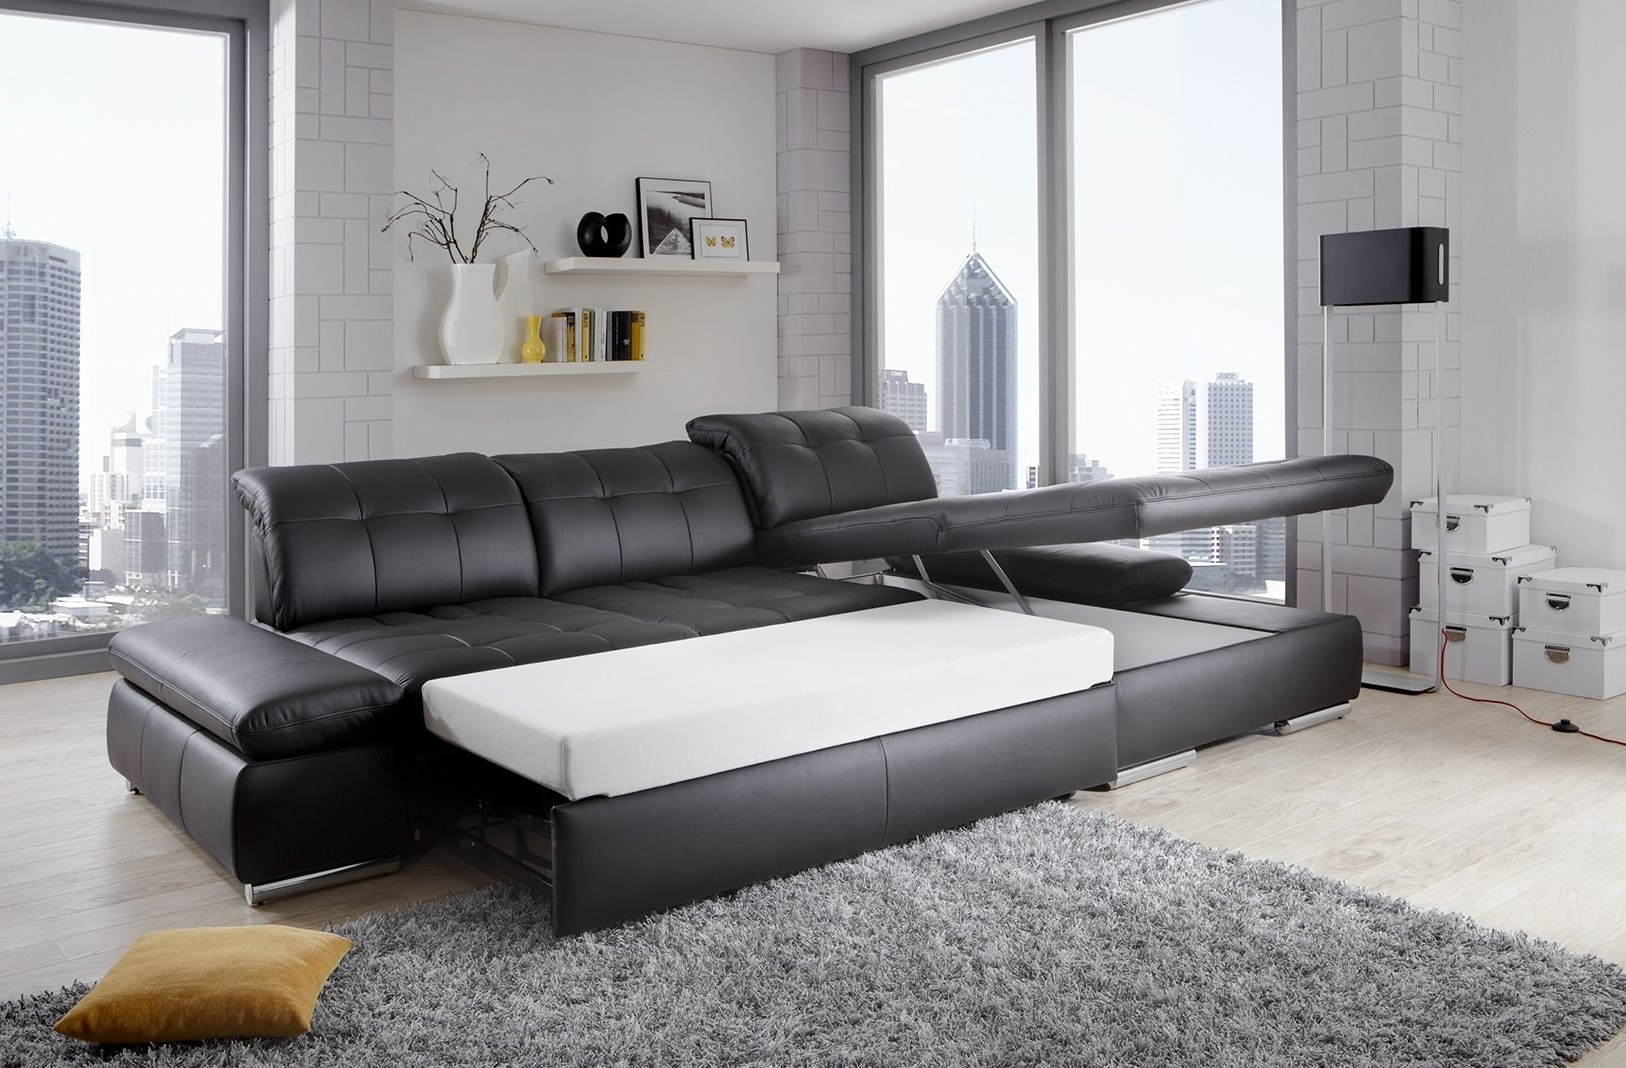 Alpine Sectional Sofa In Black Leather Left Chaise Pertaining To Fashionable Nj Sectional Sofas (View 3 of 20)